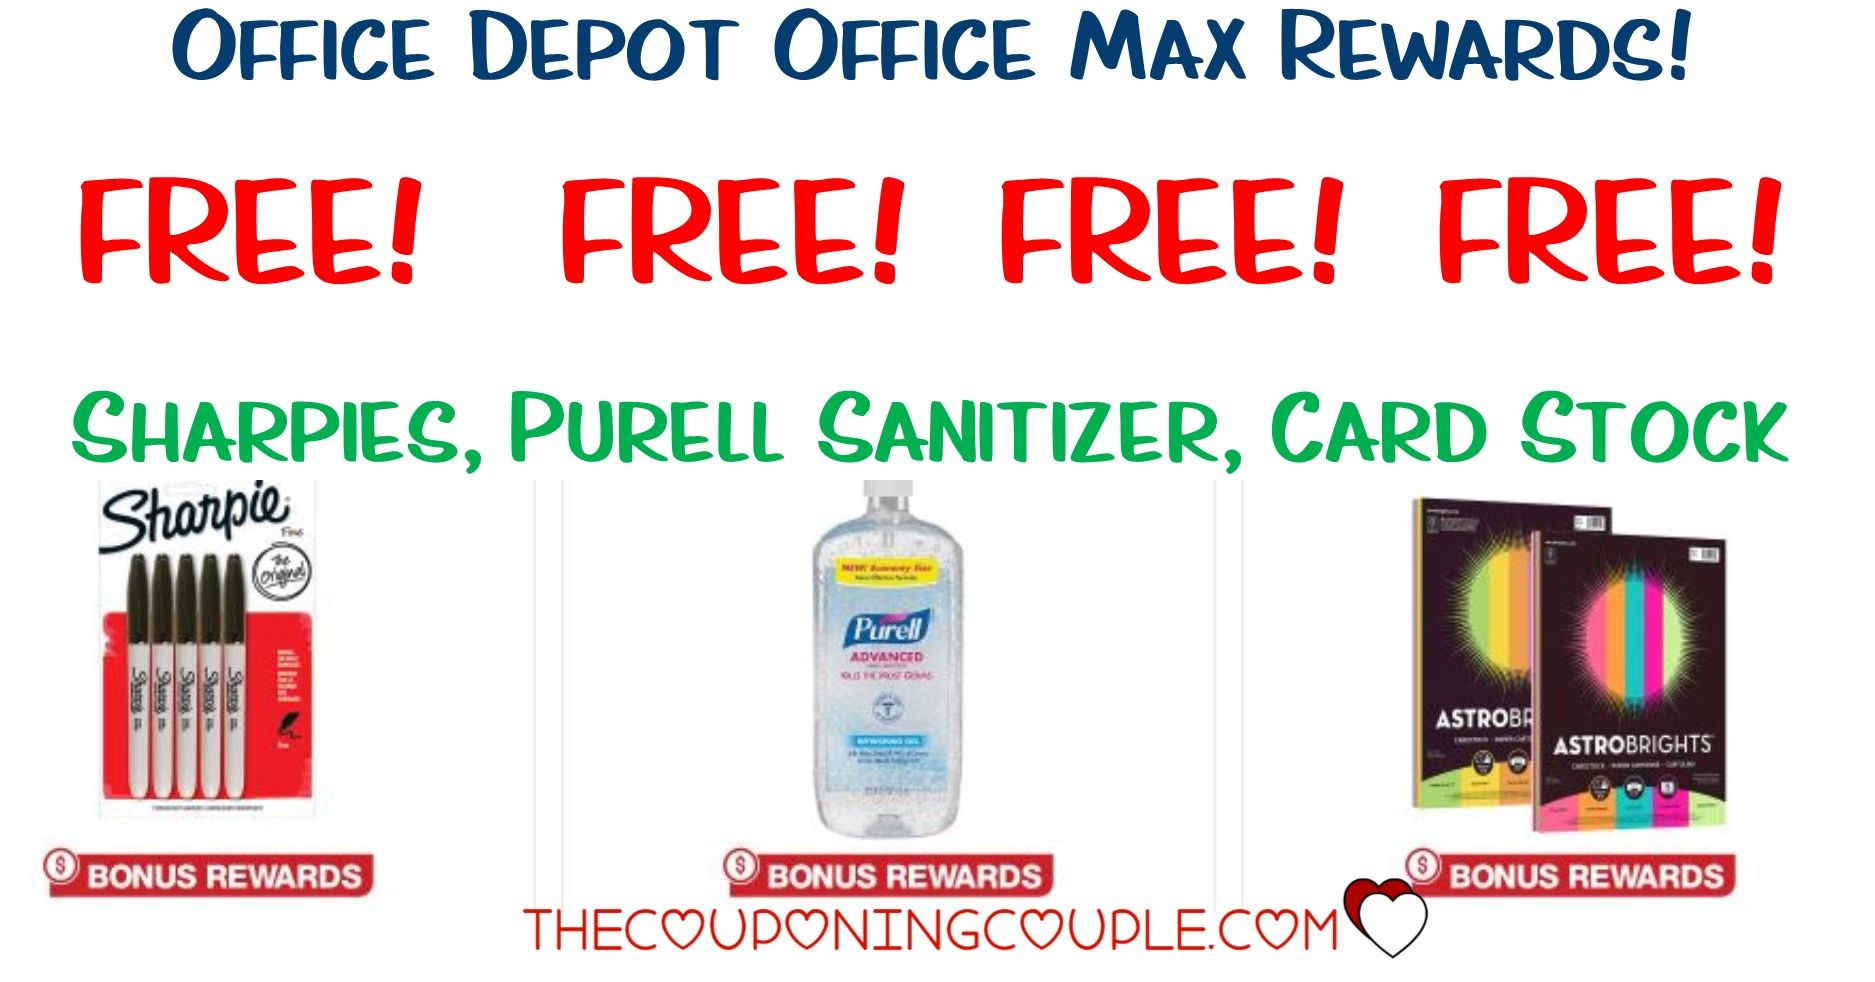 Office Depot Office Max Rewards Free Sharpies Cardstock And